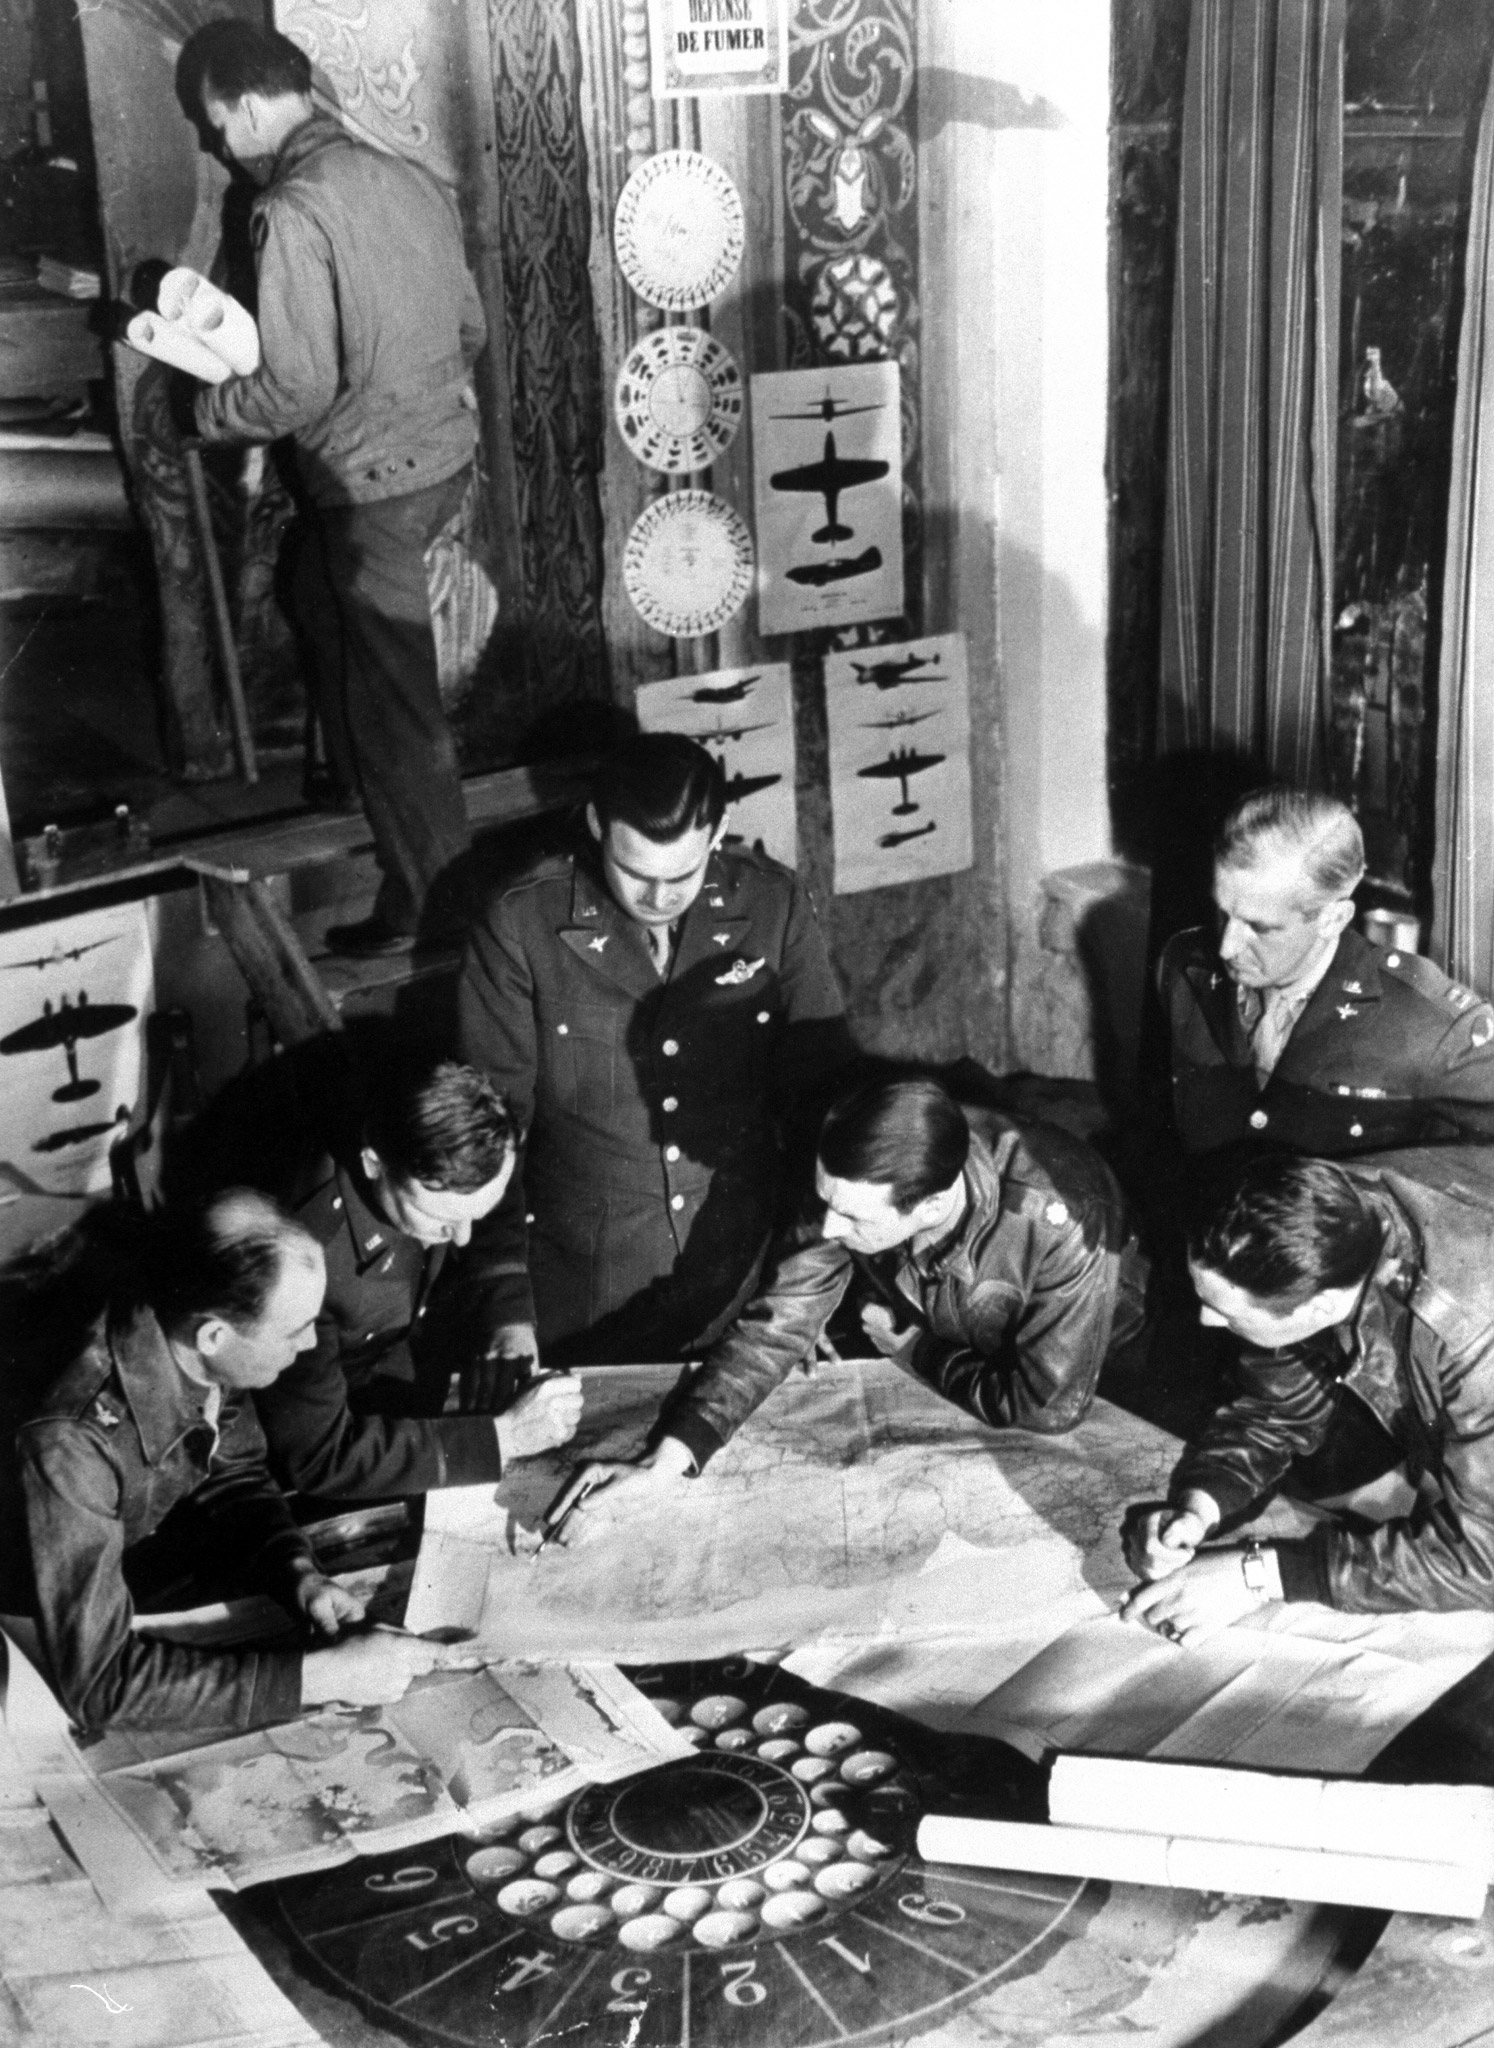 <b>Caption from LIFE.</b> Planning the mission at Bomber Wing Headquarters, operations and intelligence officers carefully study maps of the proposed target, El Auina airfield near Tunis. The gaming table on which the charts are spread belonged to occupents of pre-war days. Favorite gag of American combat crews based here is to suggest using dice to shoot for the target.